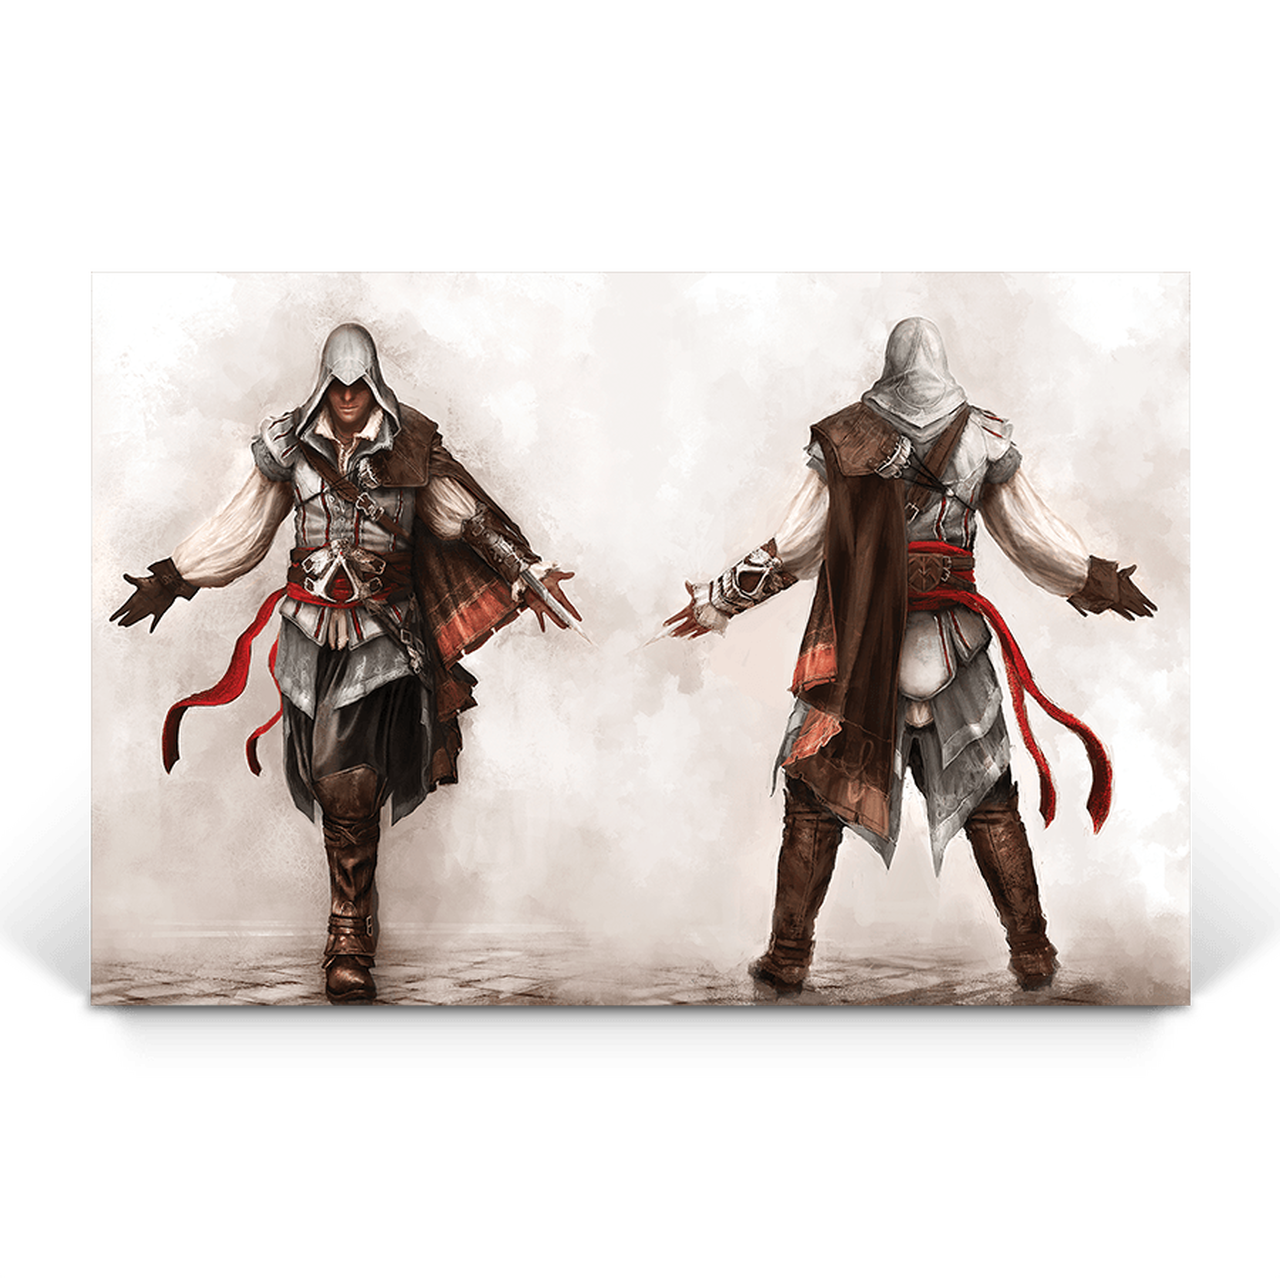 Joining The Brotherhood Assassin S Creed 2 Gaming Wall Art Ubisoft Store